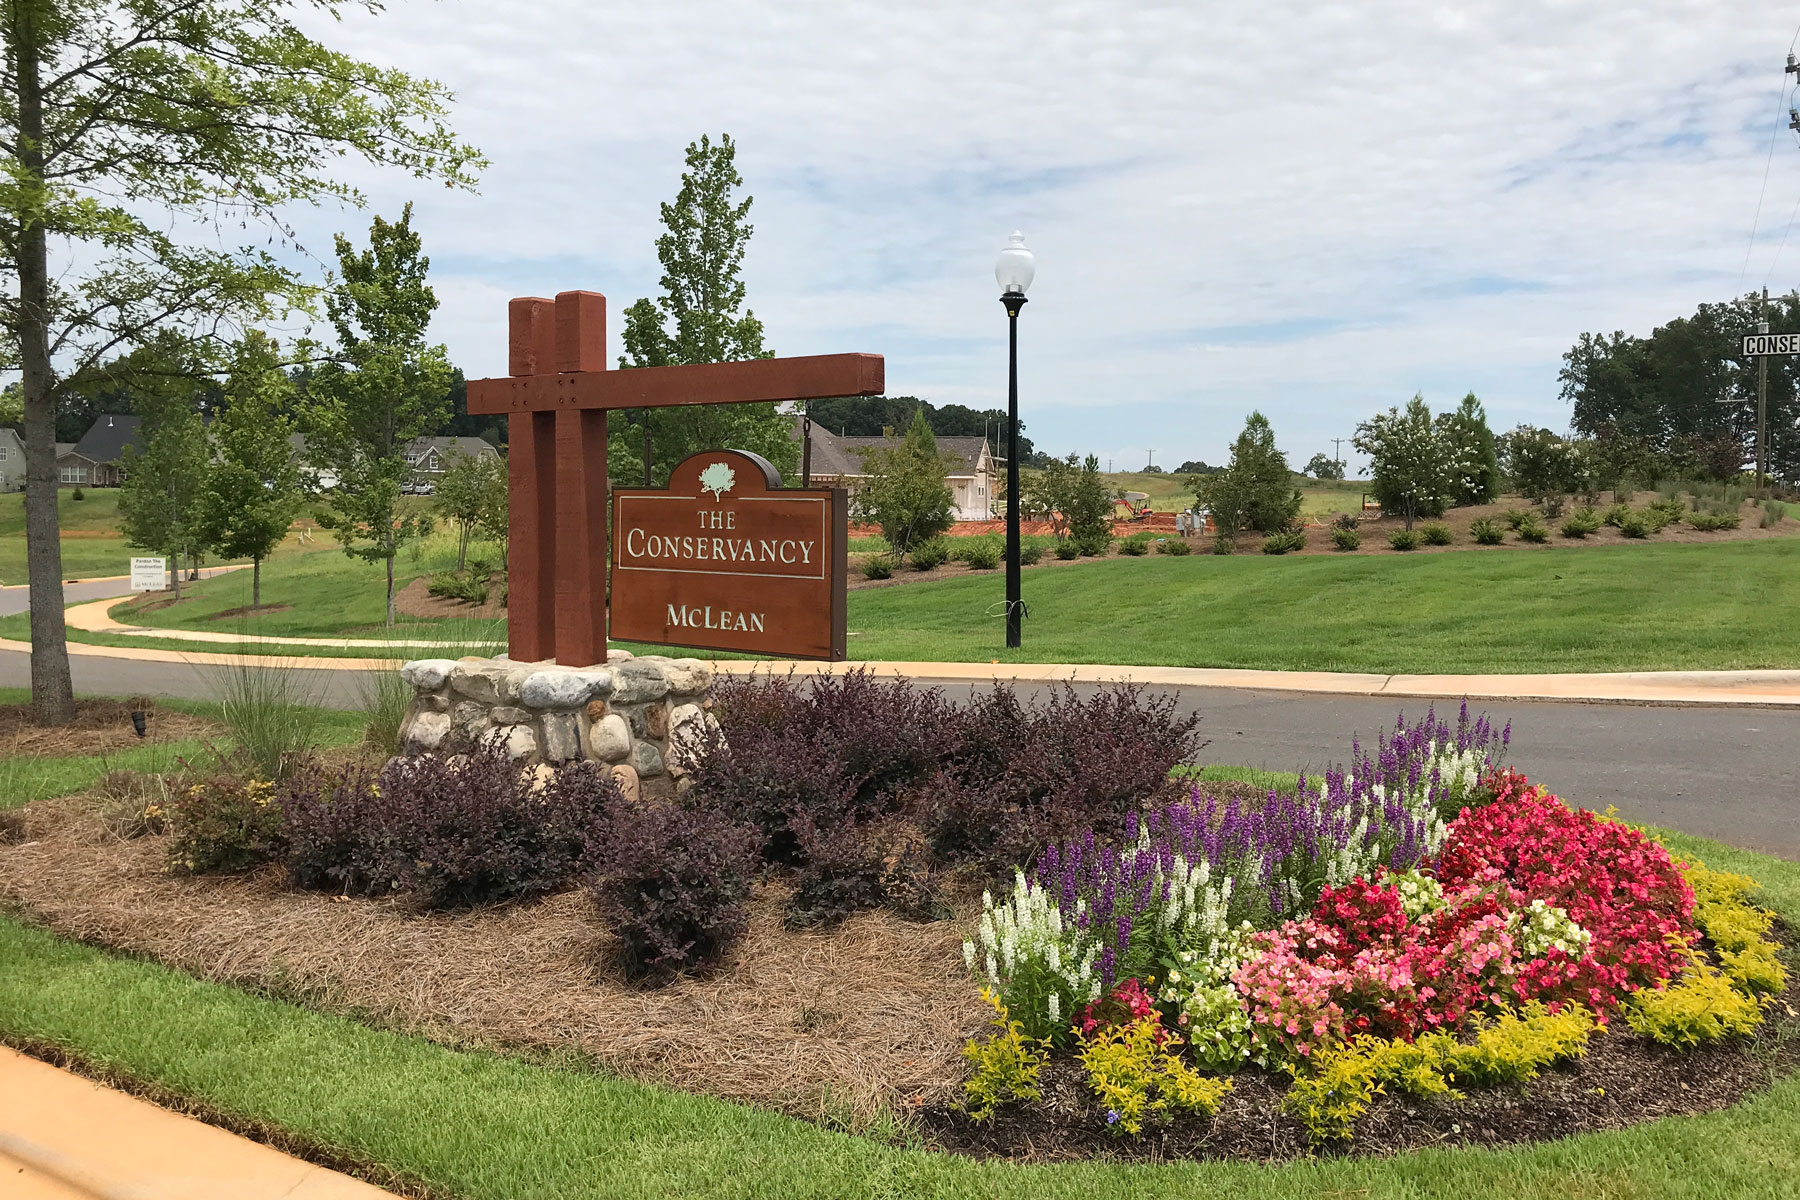 McLean - The Conservancy Community Entrance